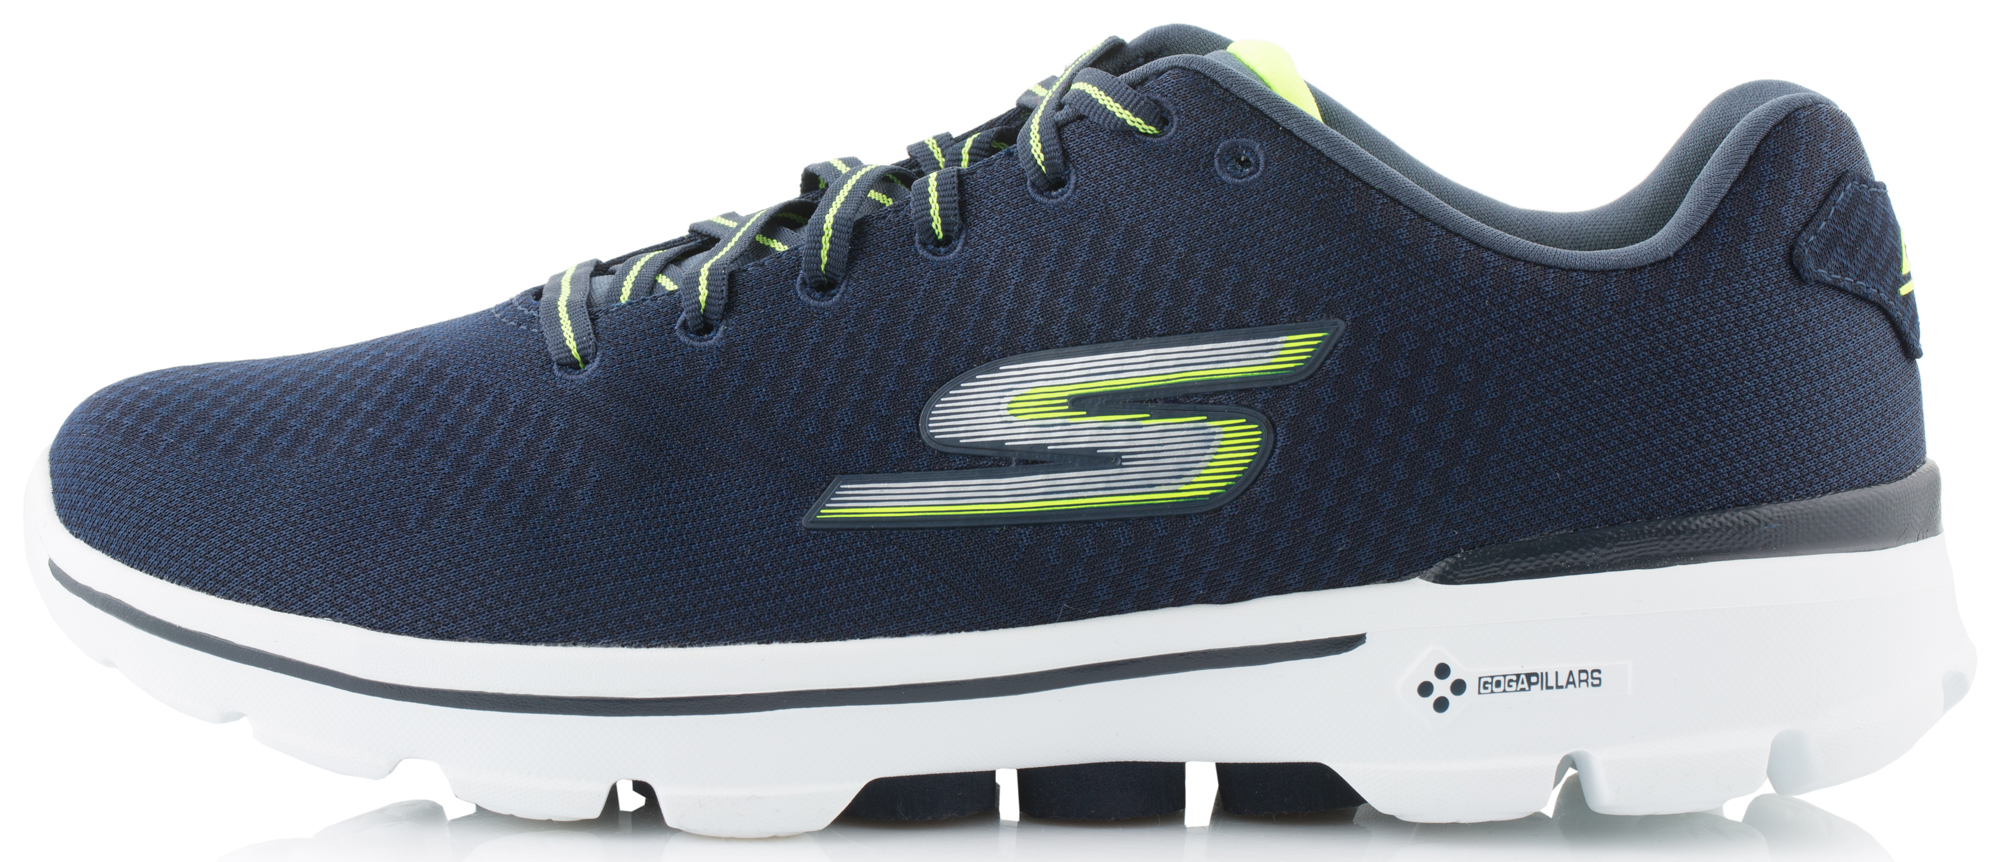 Skechers Кроссовки мужские Skechers Go Walk 3 ноутбук hp 15 bs079ur 1vh74ea intel core i3 6006u 2 0 ghz 4096mb 1000gb dvd rw amd radeon 520 2048mb wi fi cam 15 6 1920x1080 dos